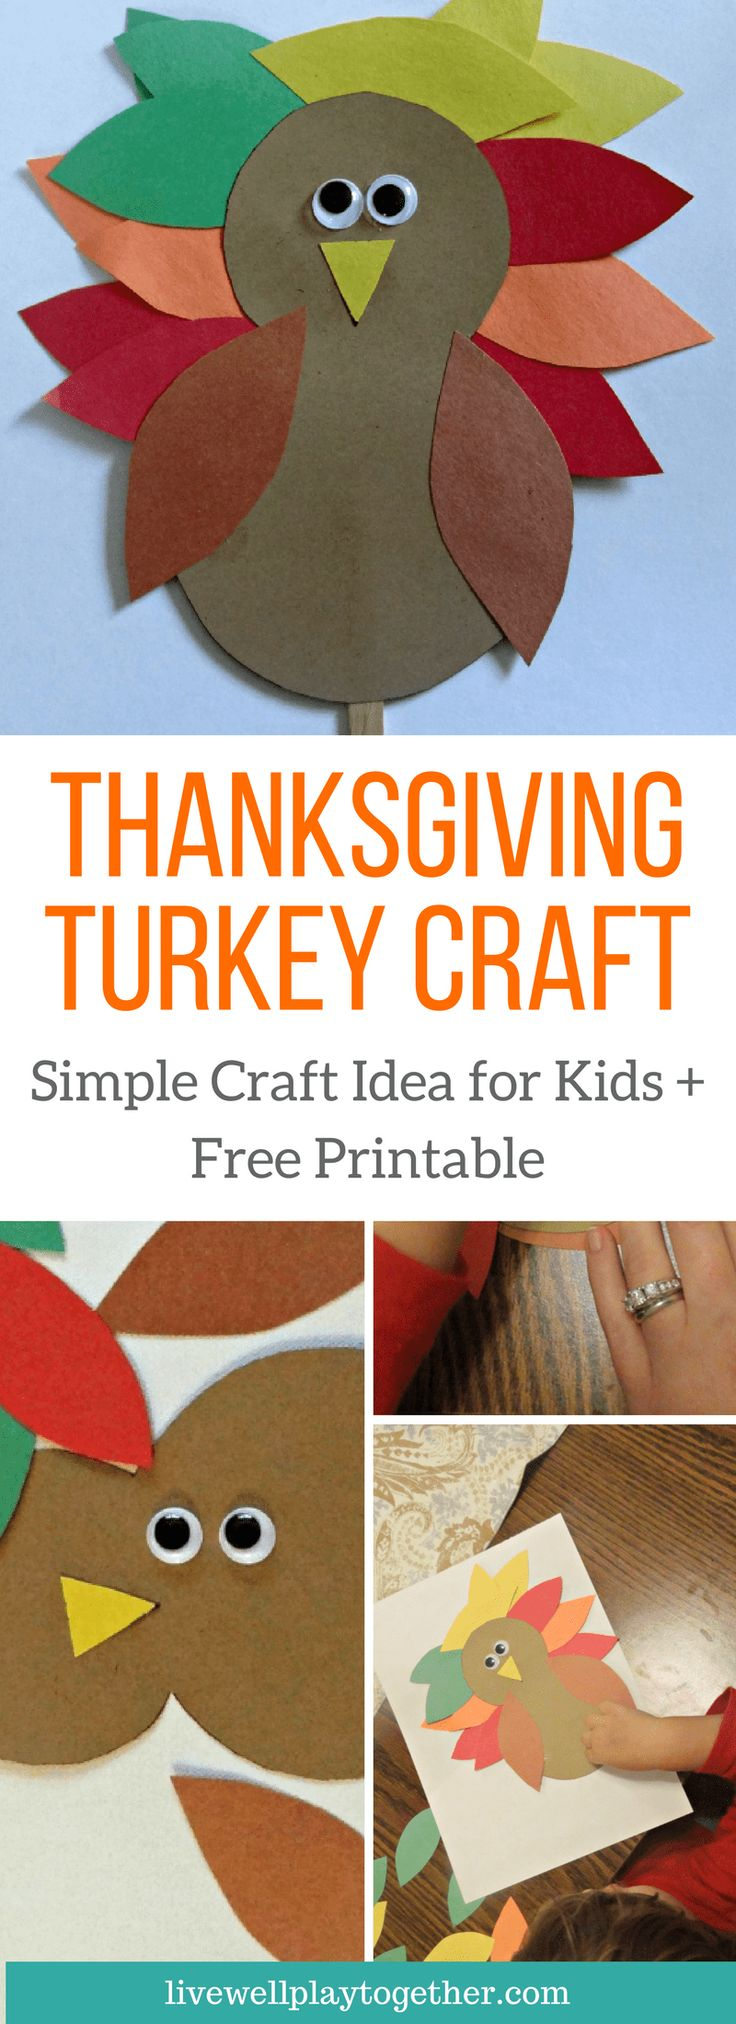 Easy Thanksgiving Turkey Craft for Kids Plus